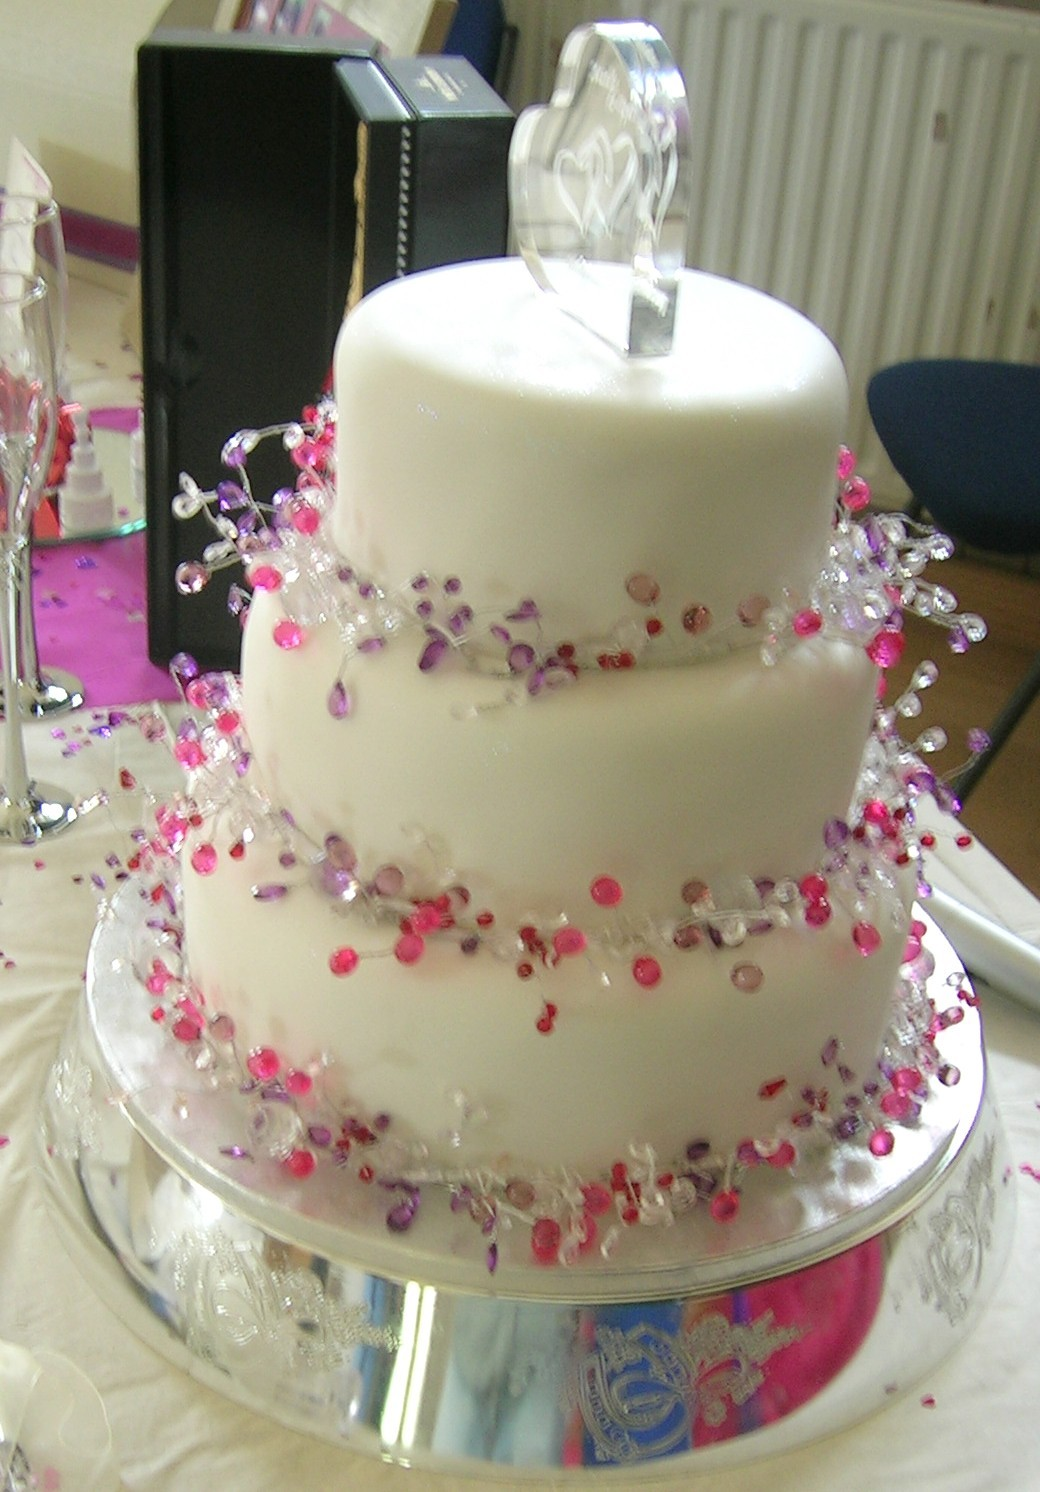 Cake Design And Decoration : Wedding Pictures Wedding Photos: Wedding Cake Decorating ...